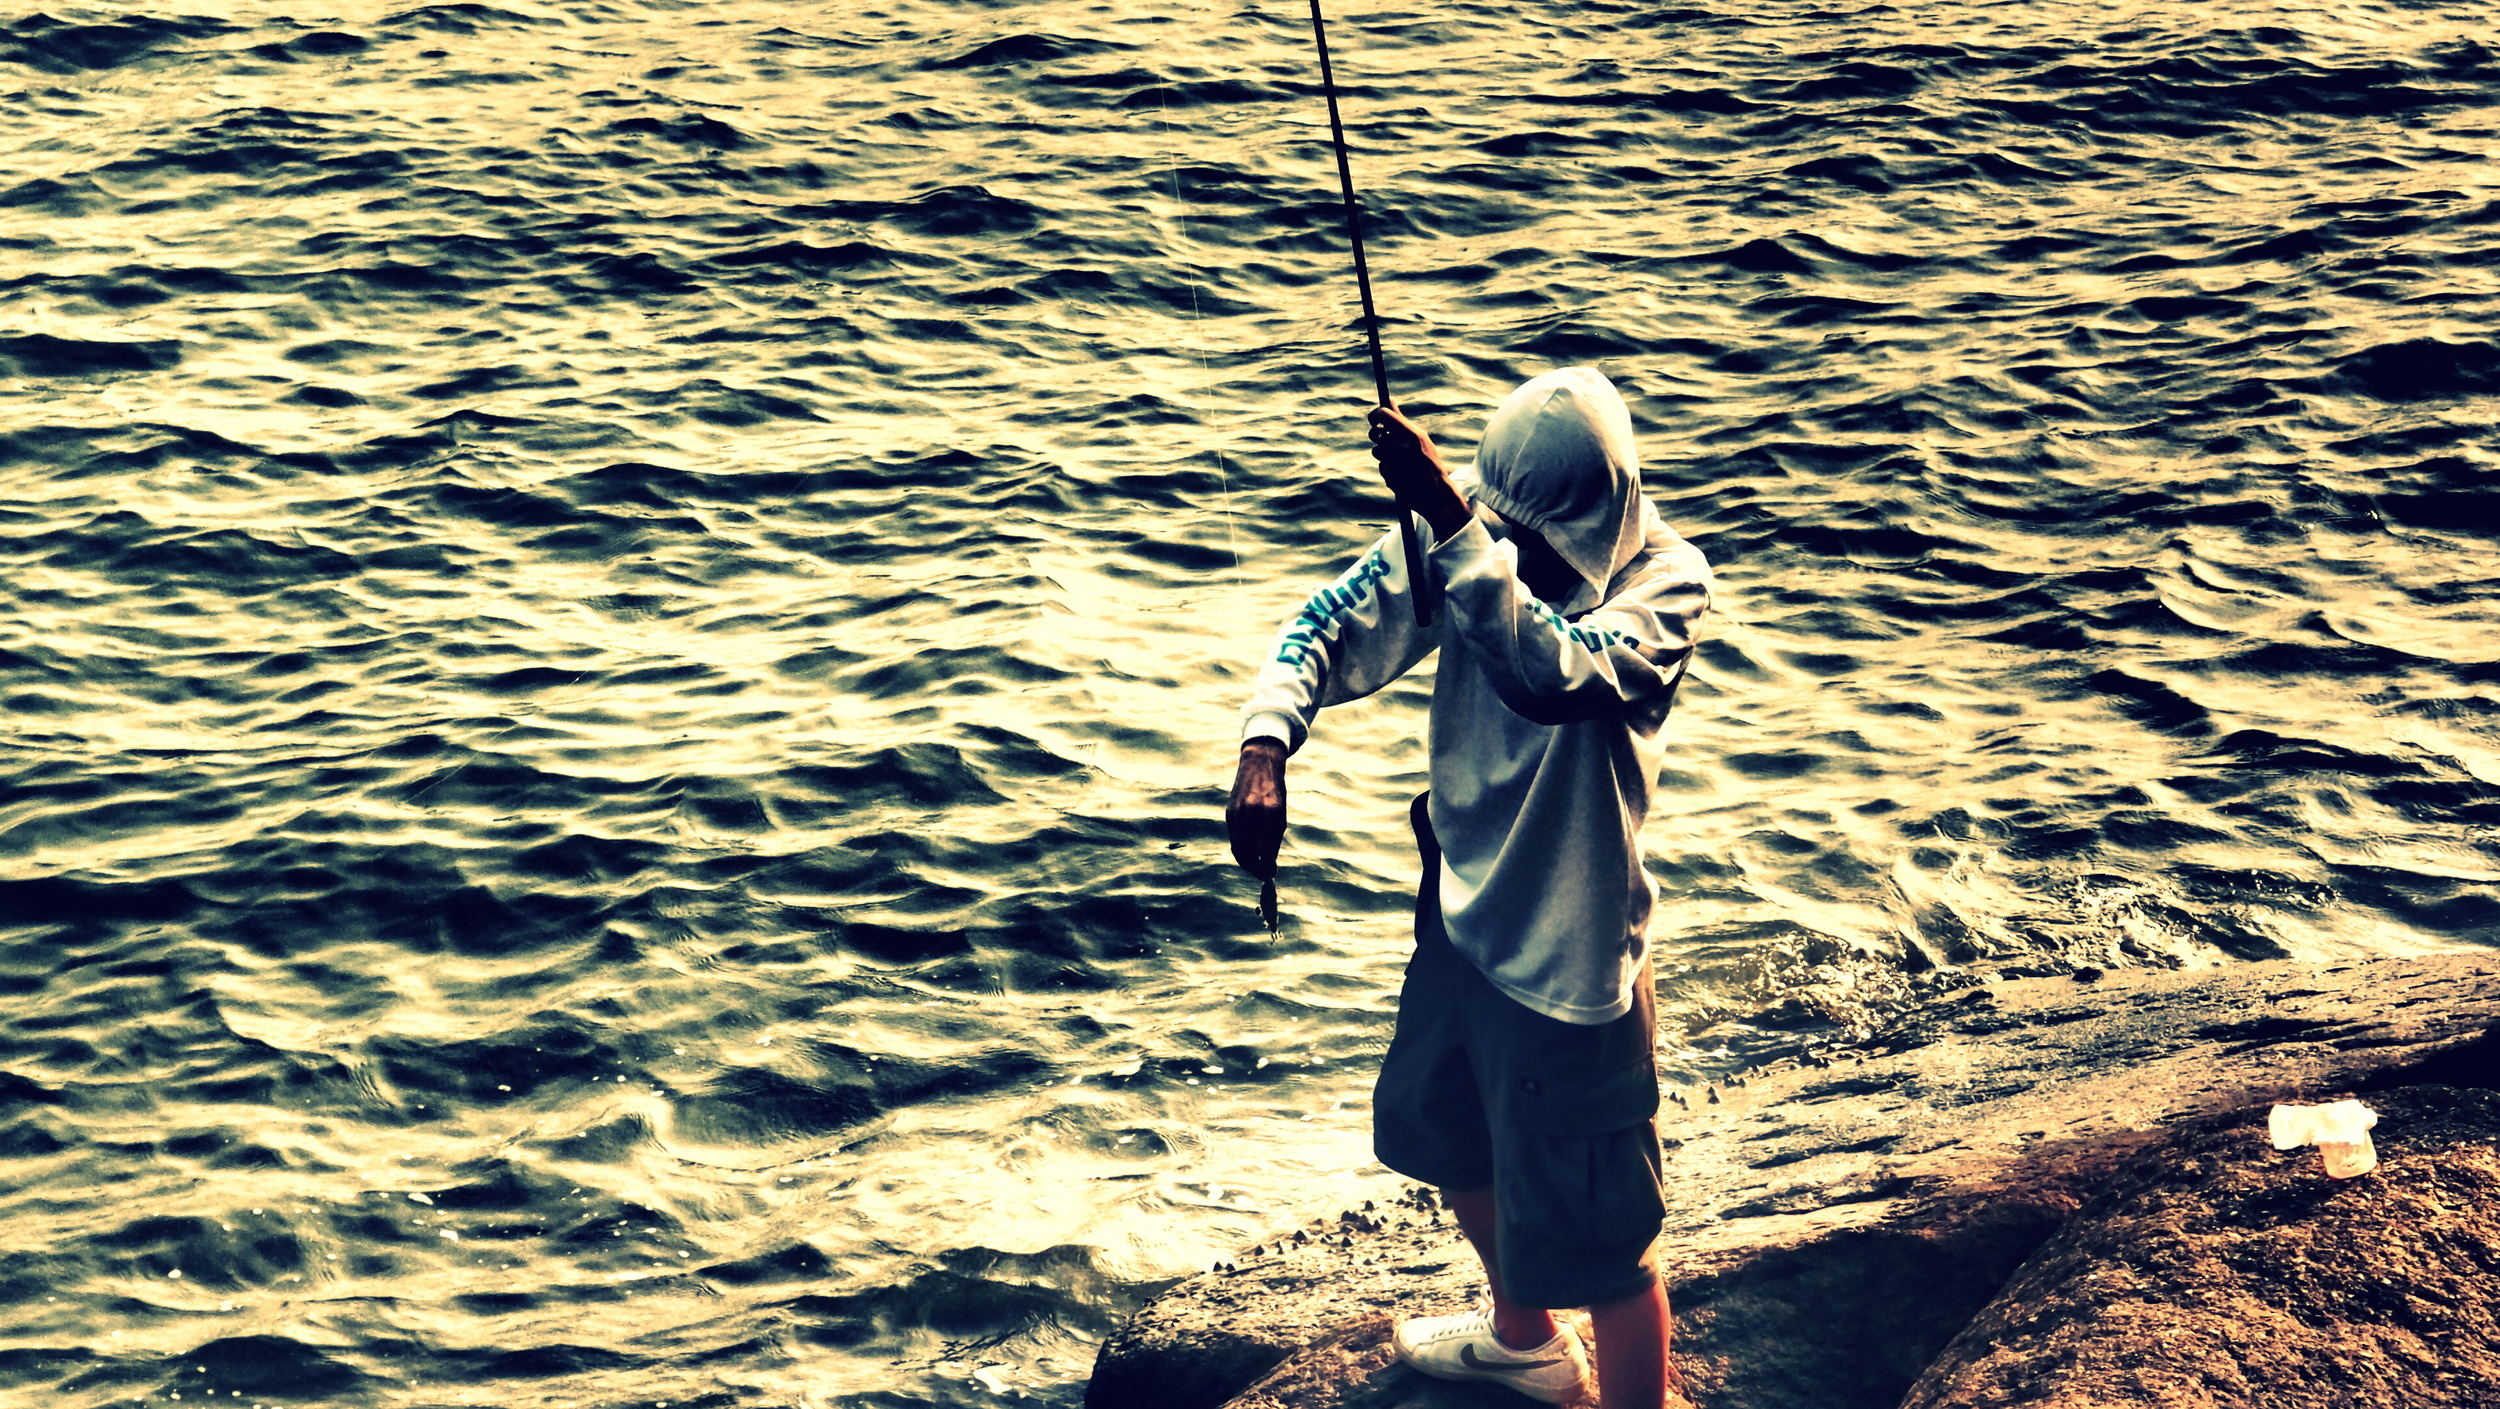 We have youths that wear hoodies, our's go fishing instead of hanging around on street corners